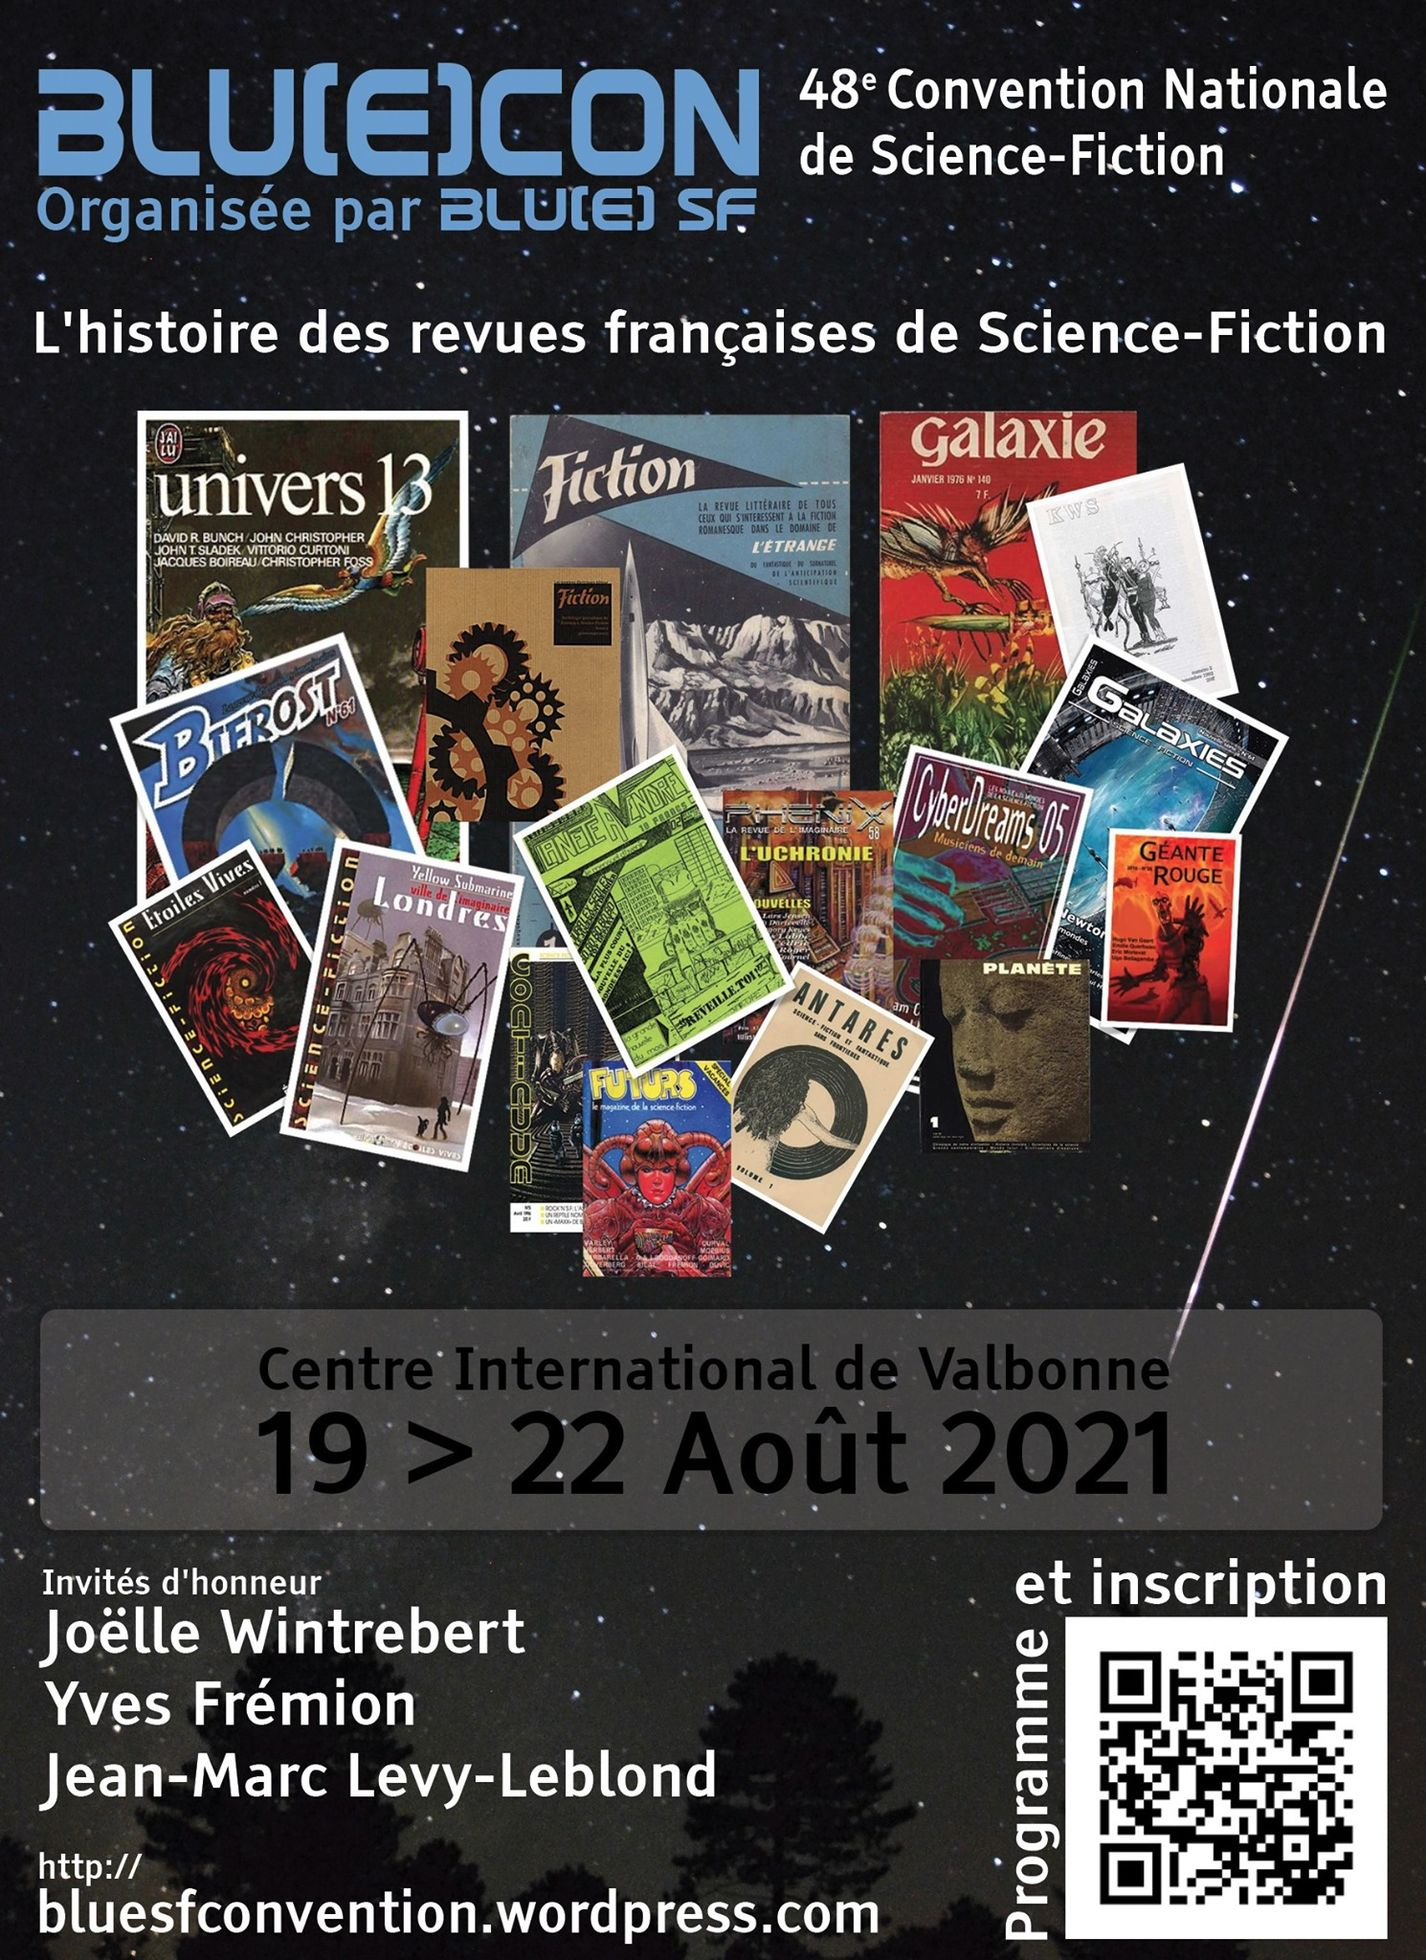 BlueCon 48e Convention Nationale de Science-Fiction